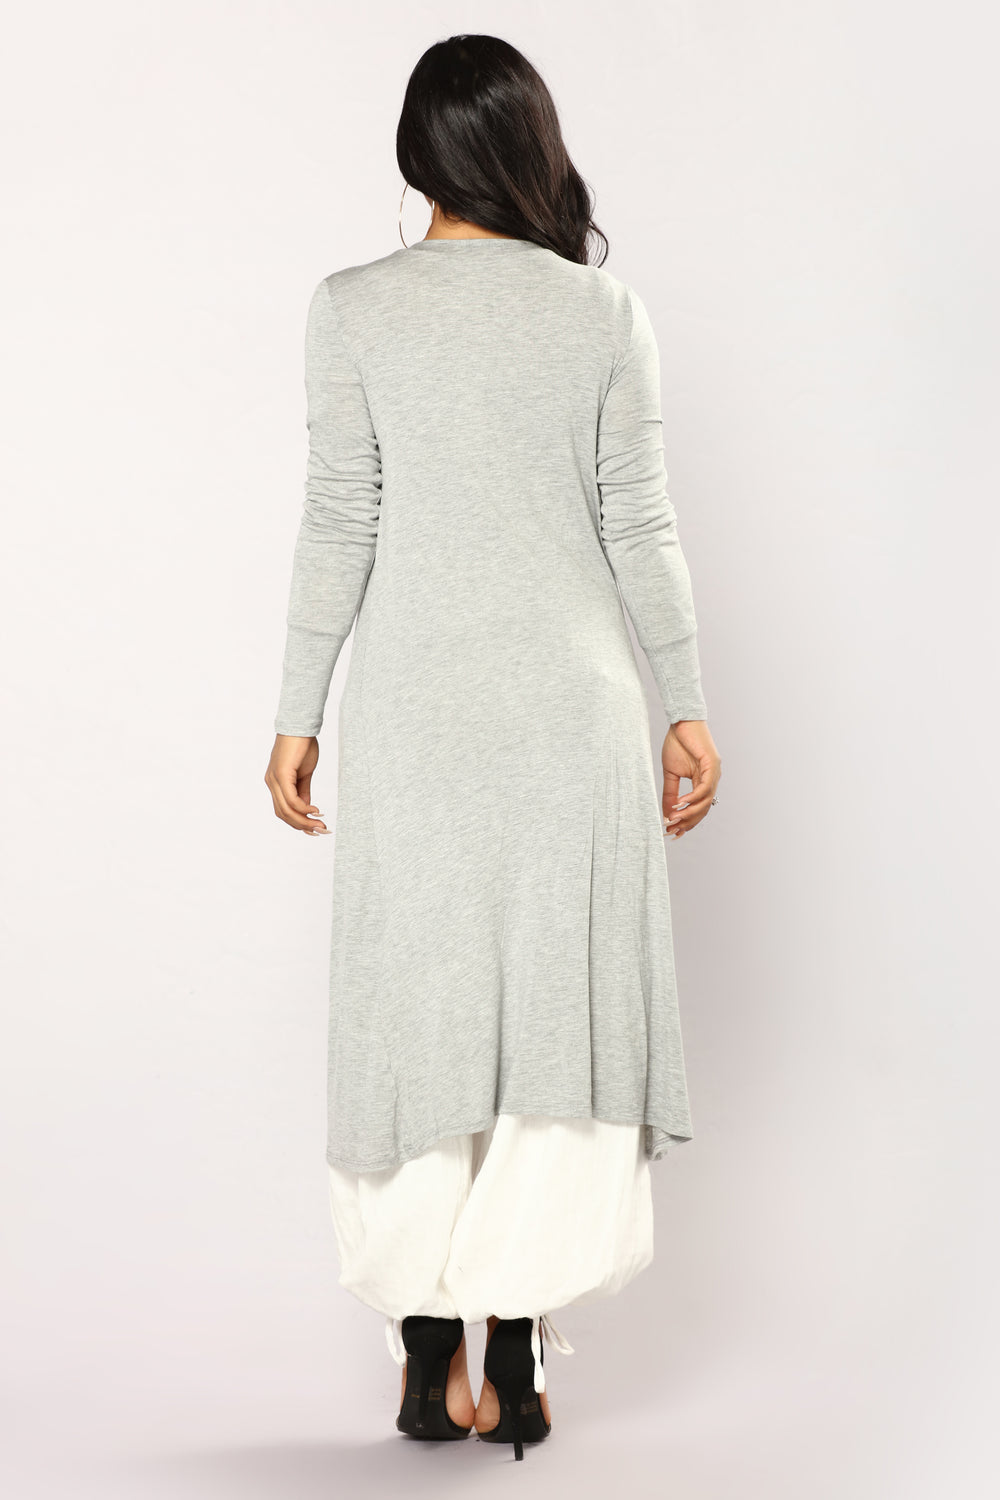 Bexley Duster - Heather Grey